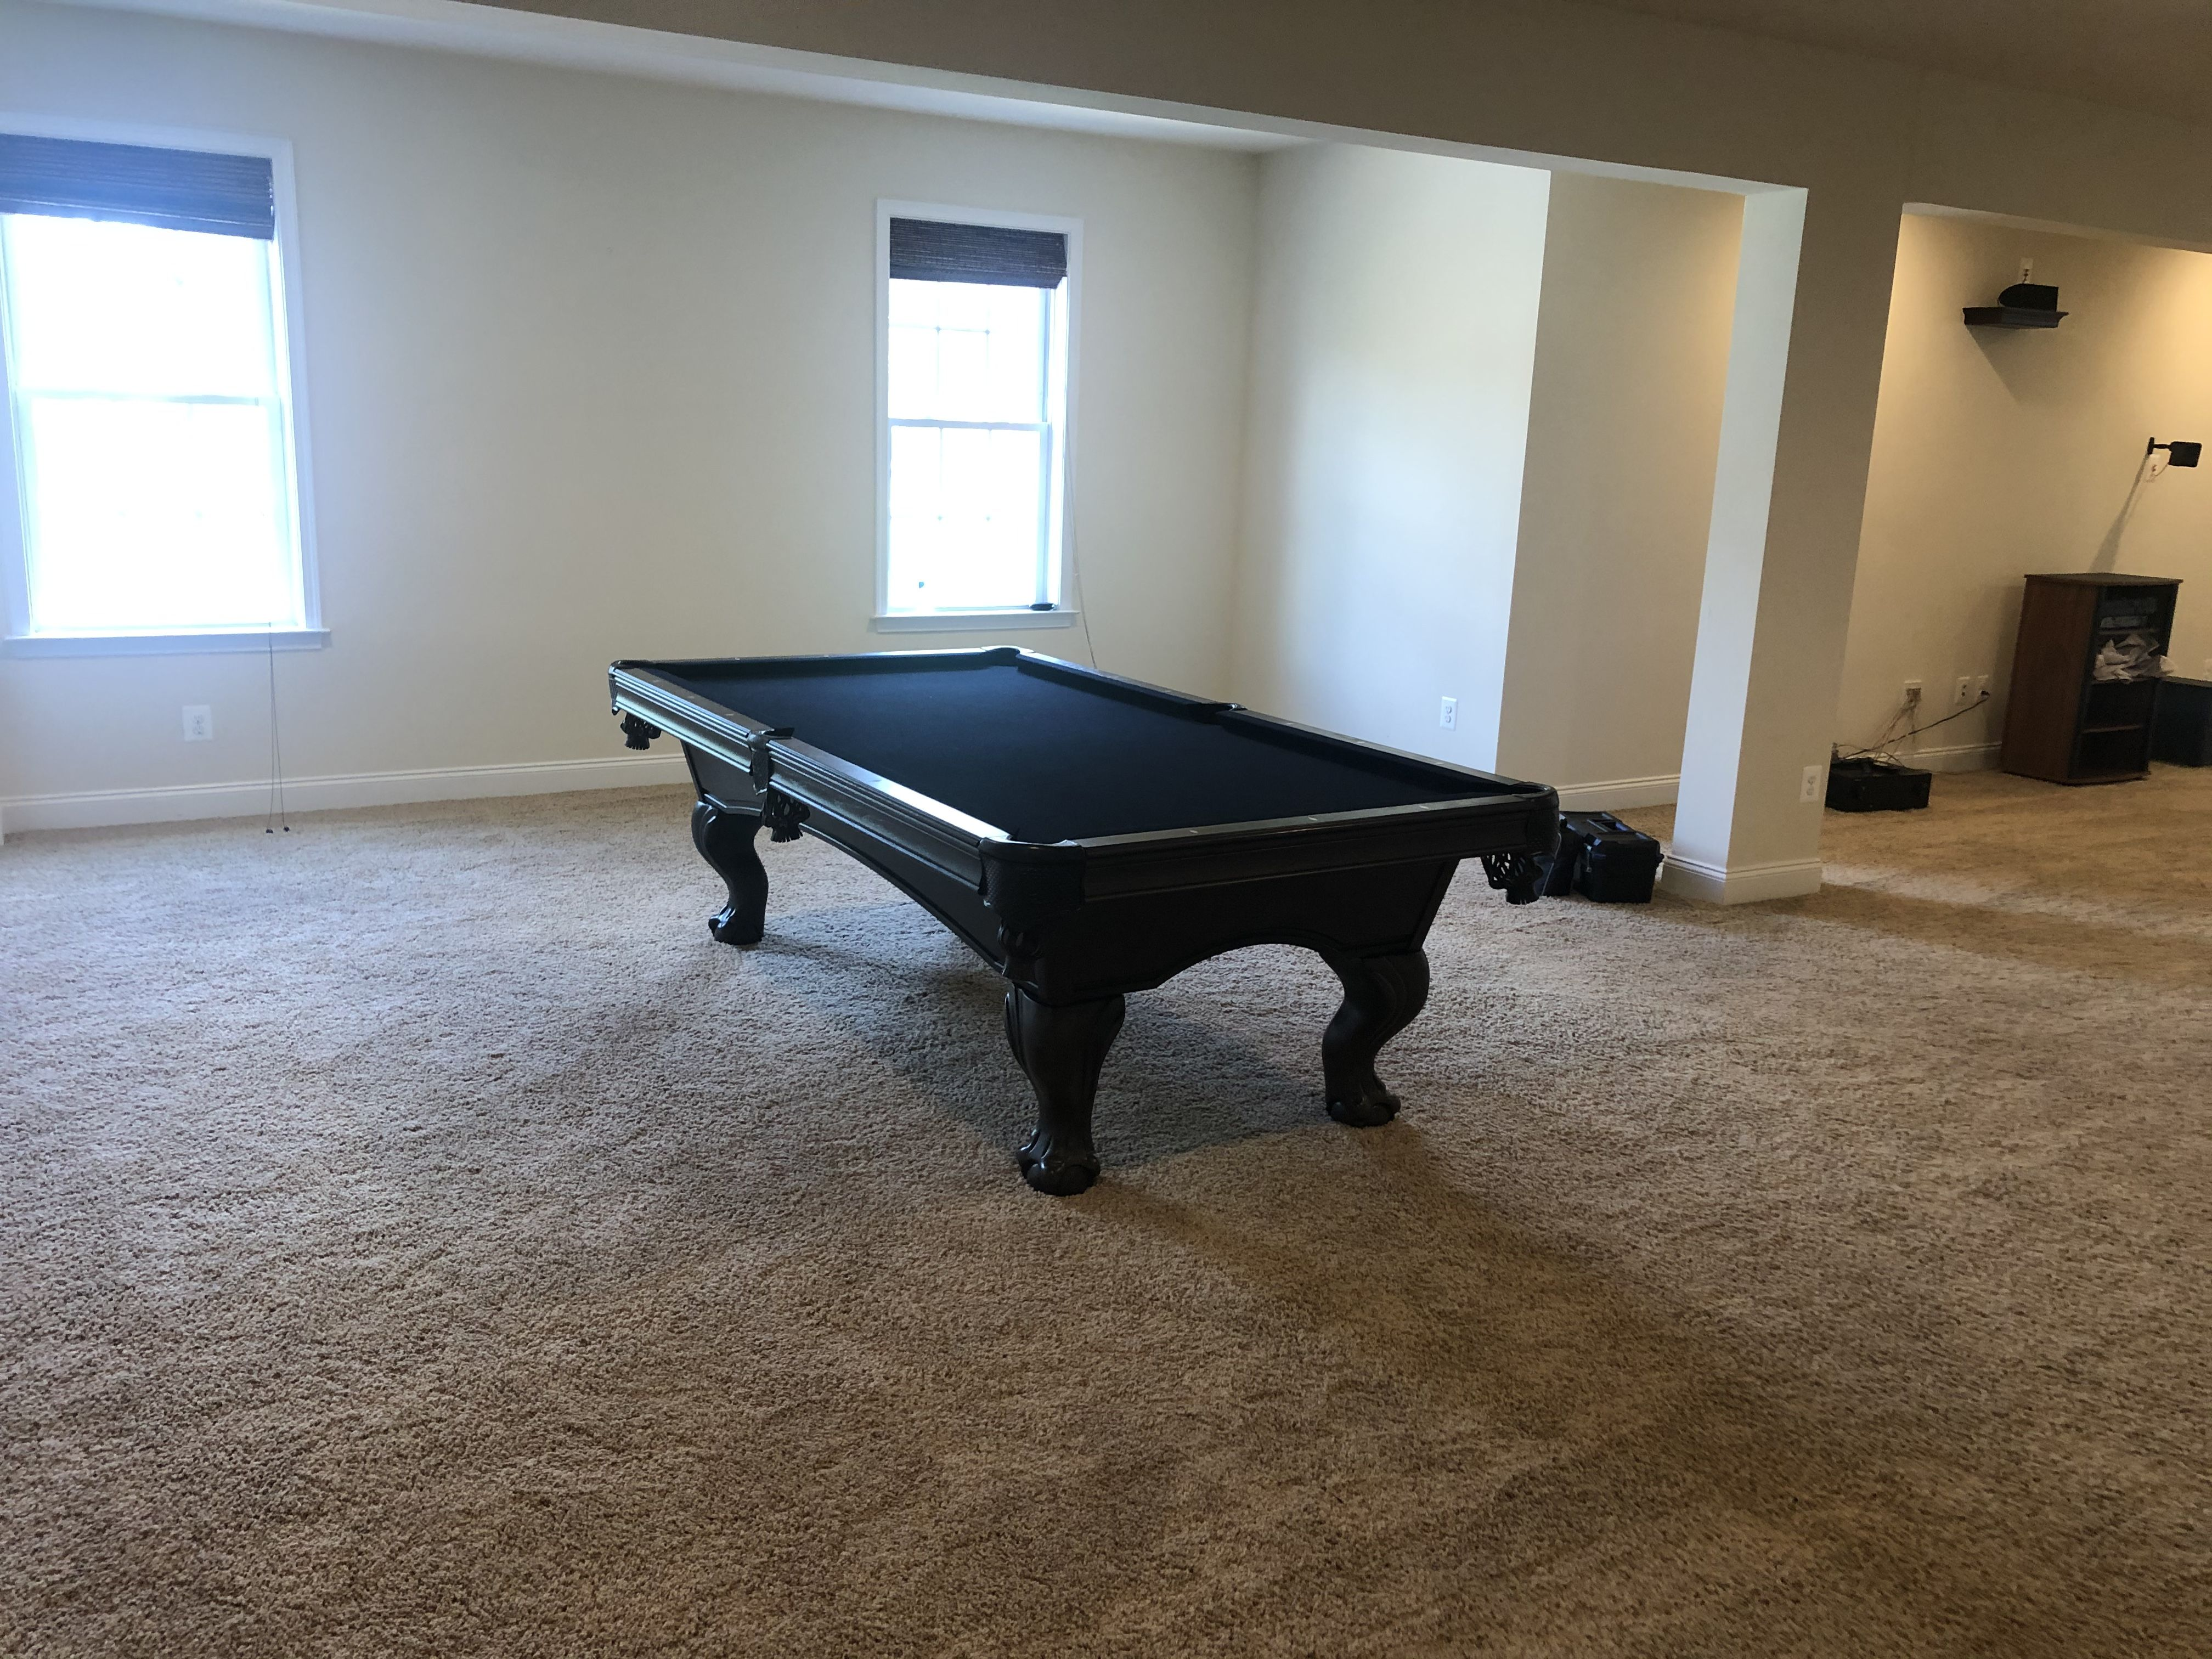 Pool table movers in manassas Virginia by Furniture ...